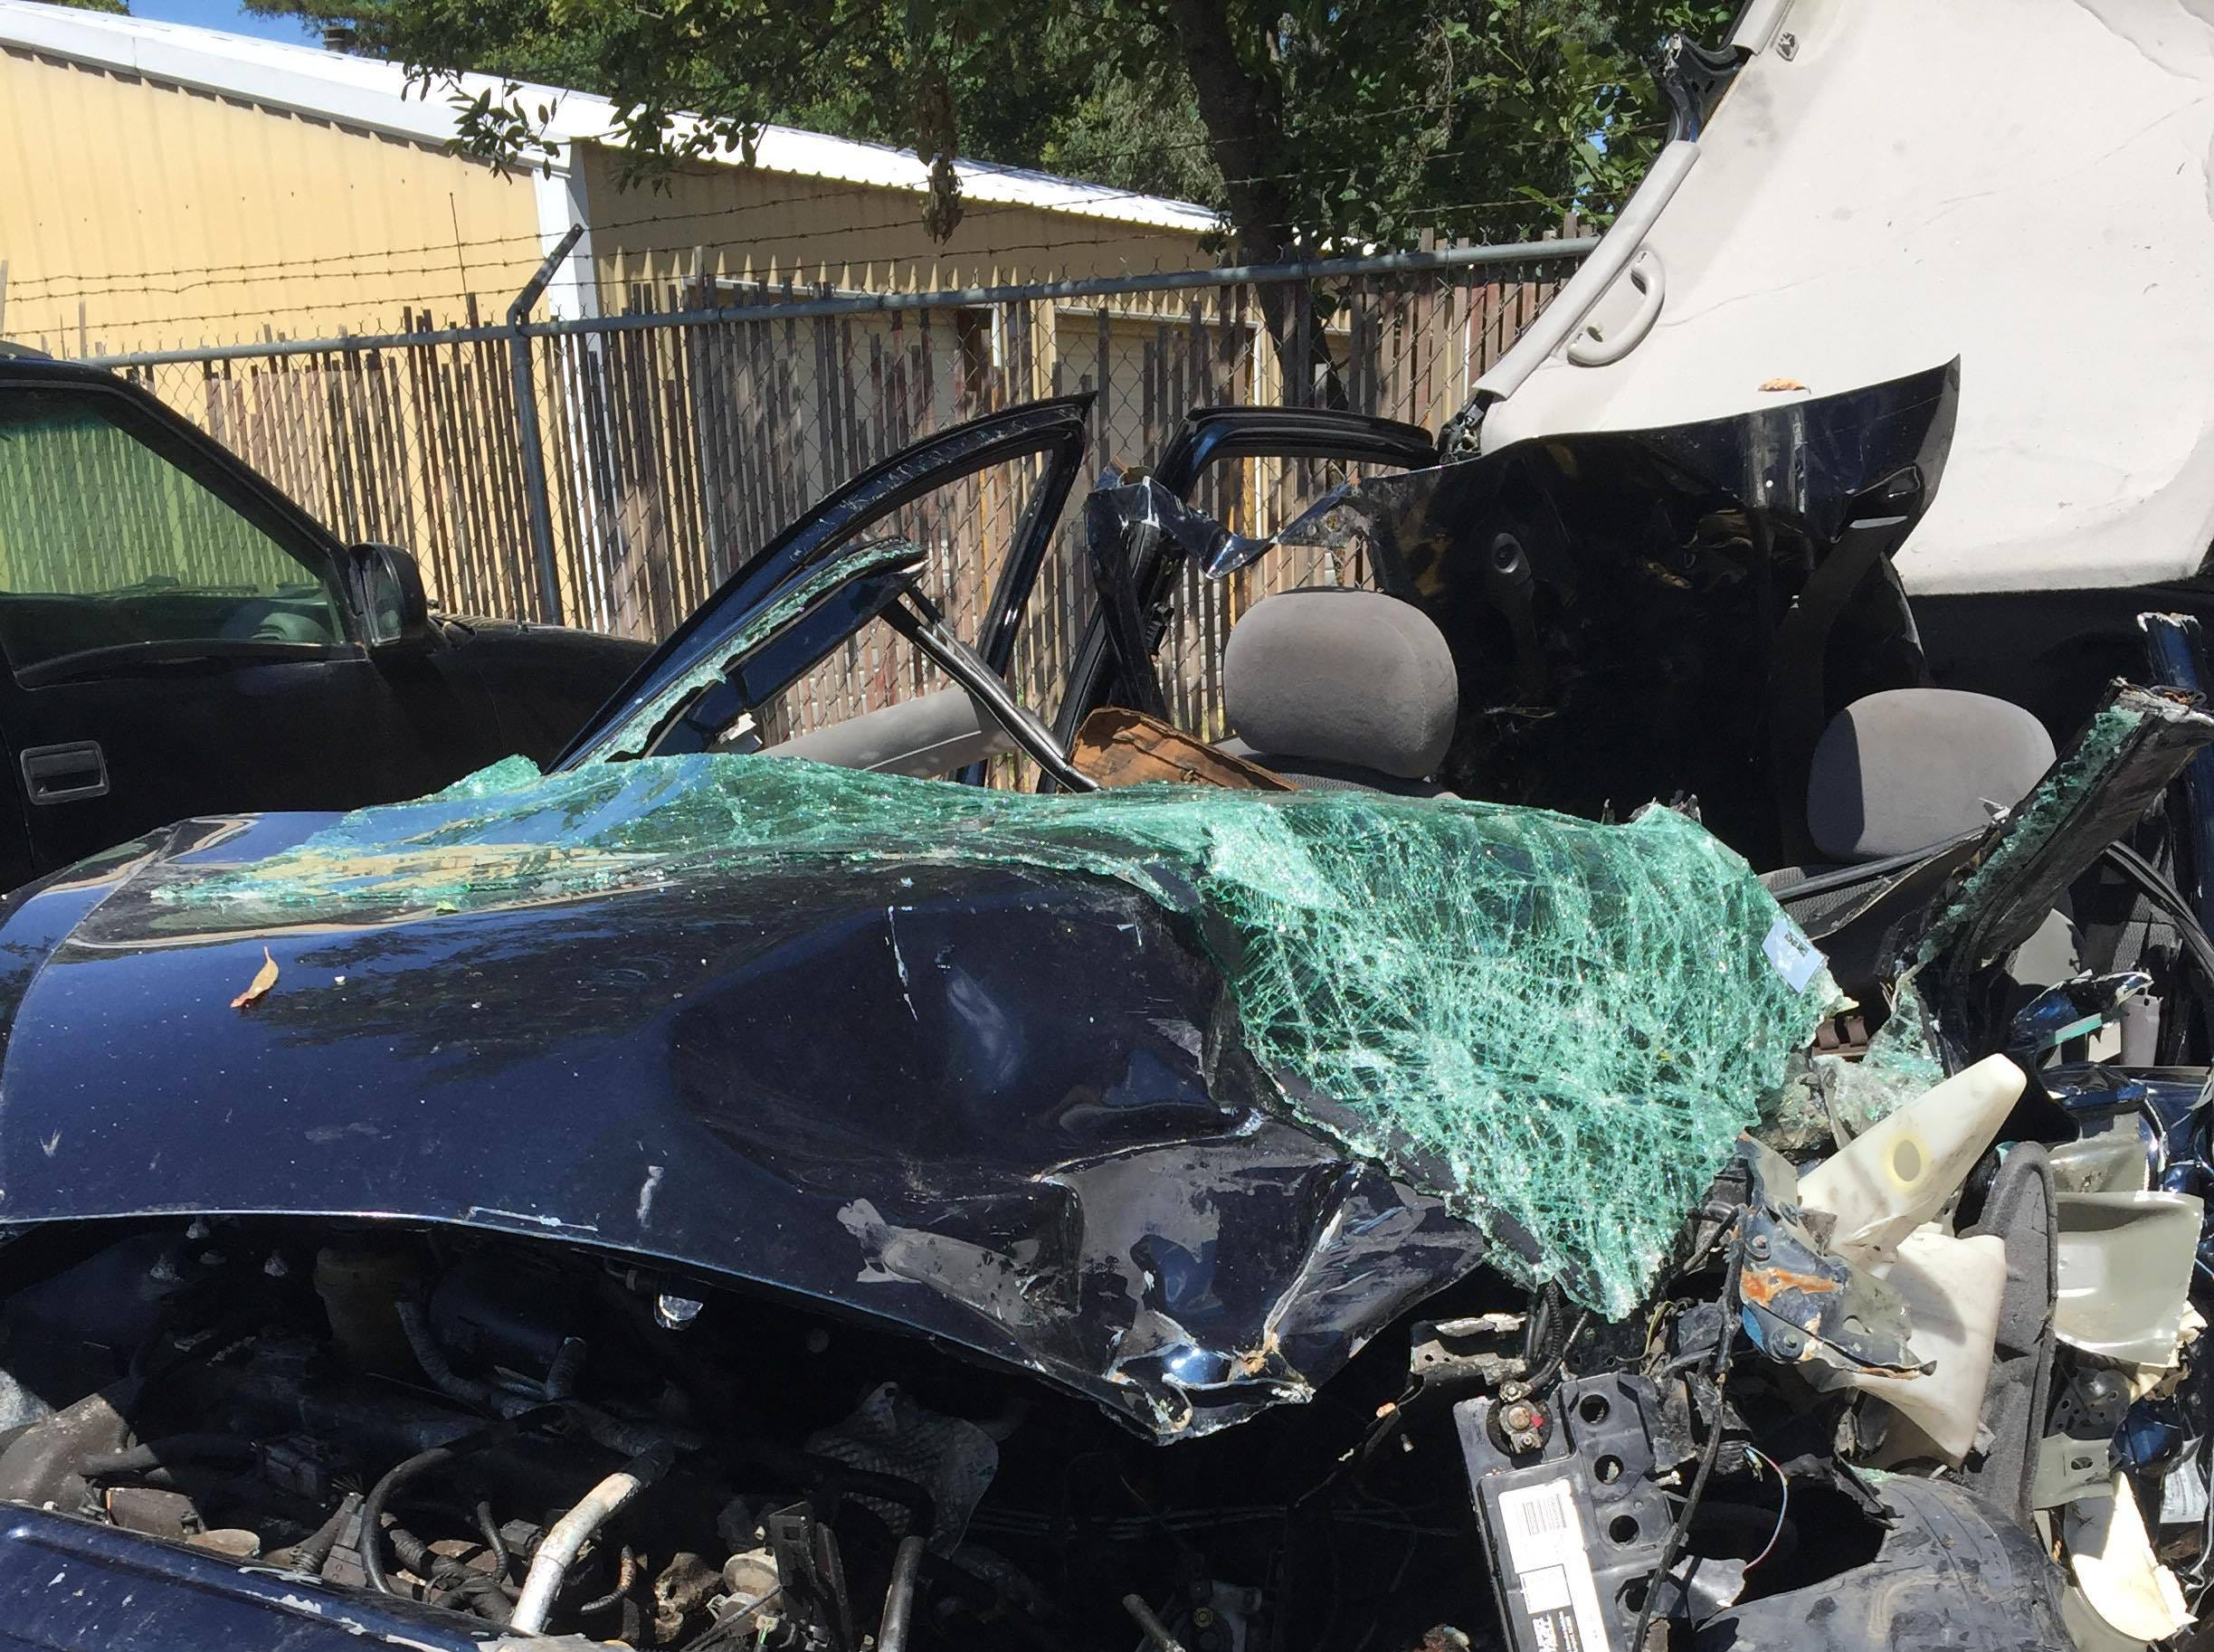 A look at the damage to Dani Gonzalez's car after the 2017 crash.